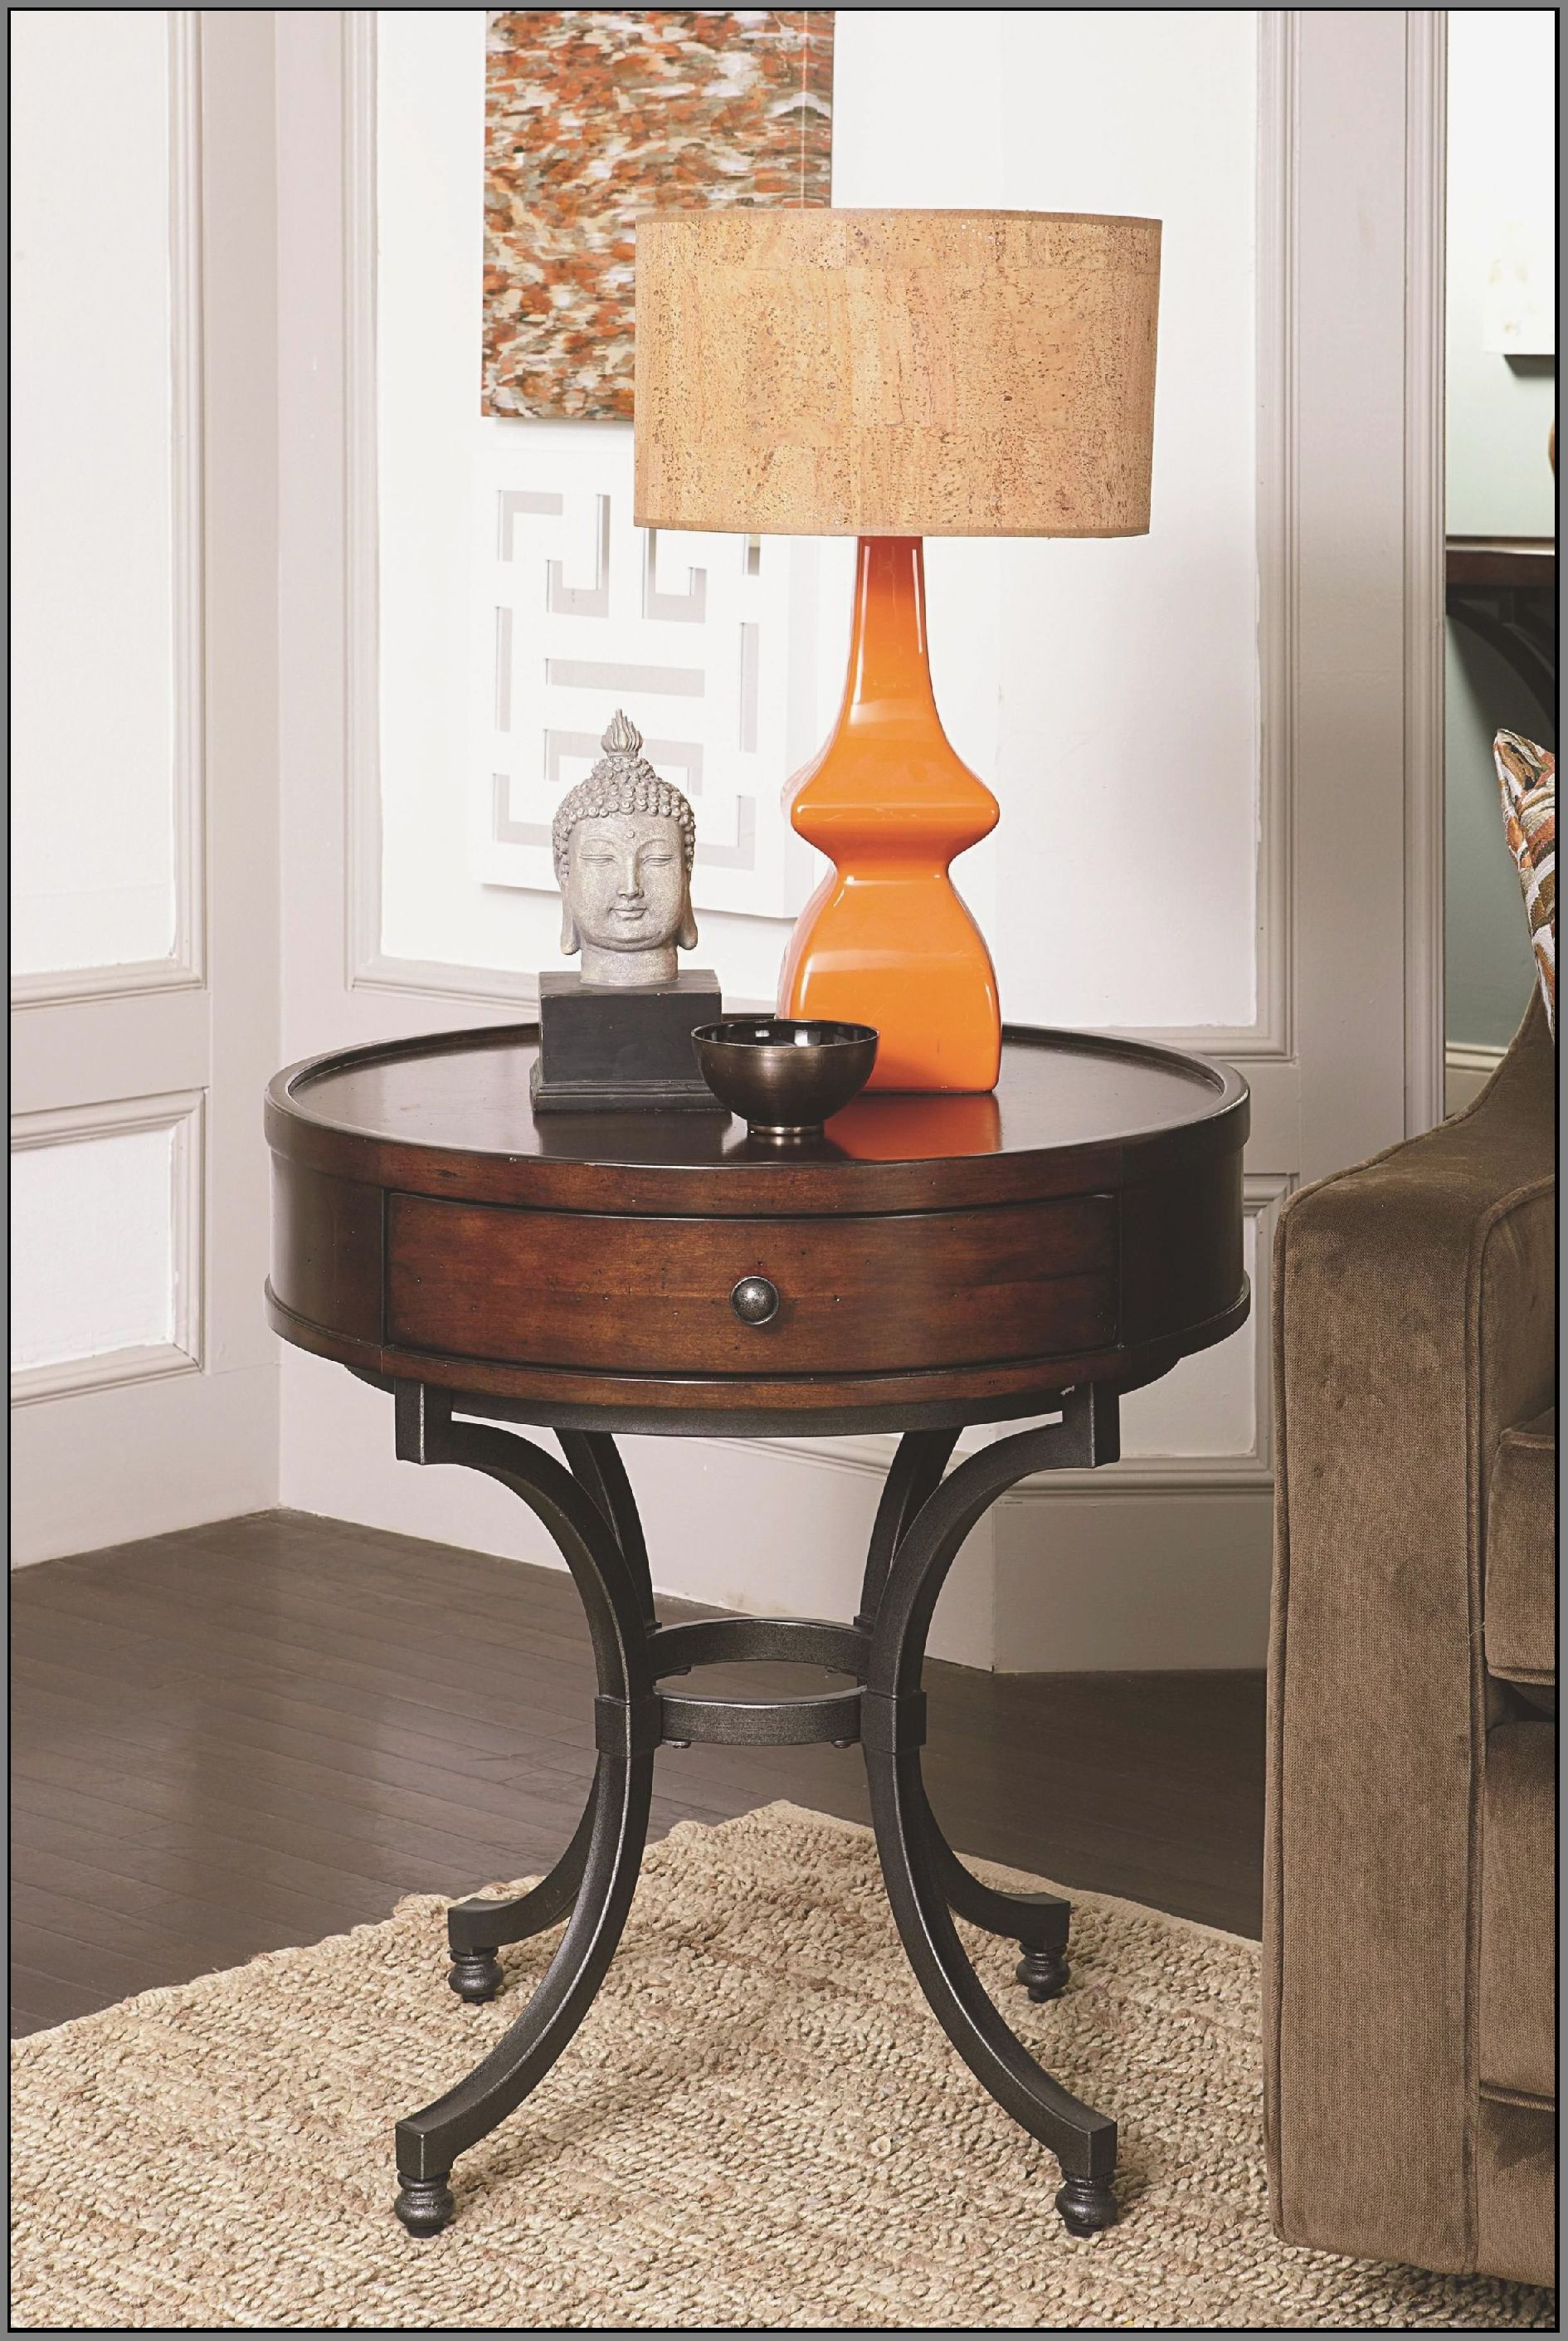 beautifull best coffee table decorating ideas and designs for amazing lovable accent decor with tables through round side small red end nest furniture pier imports metal gallerie